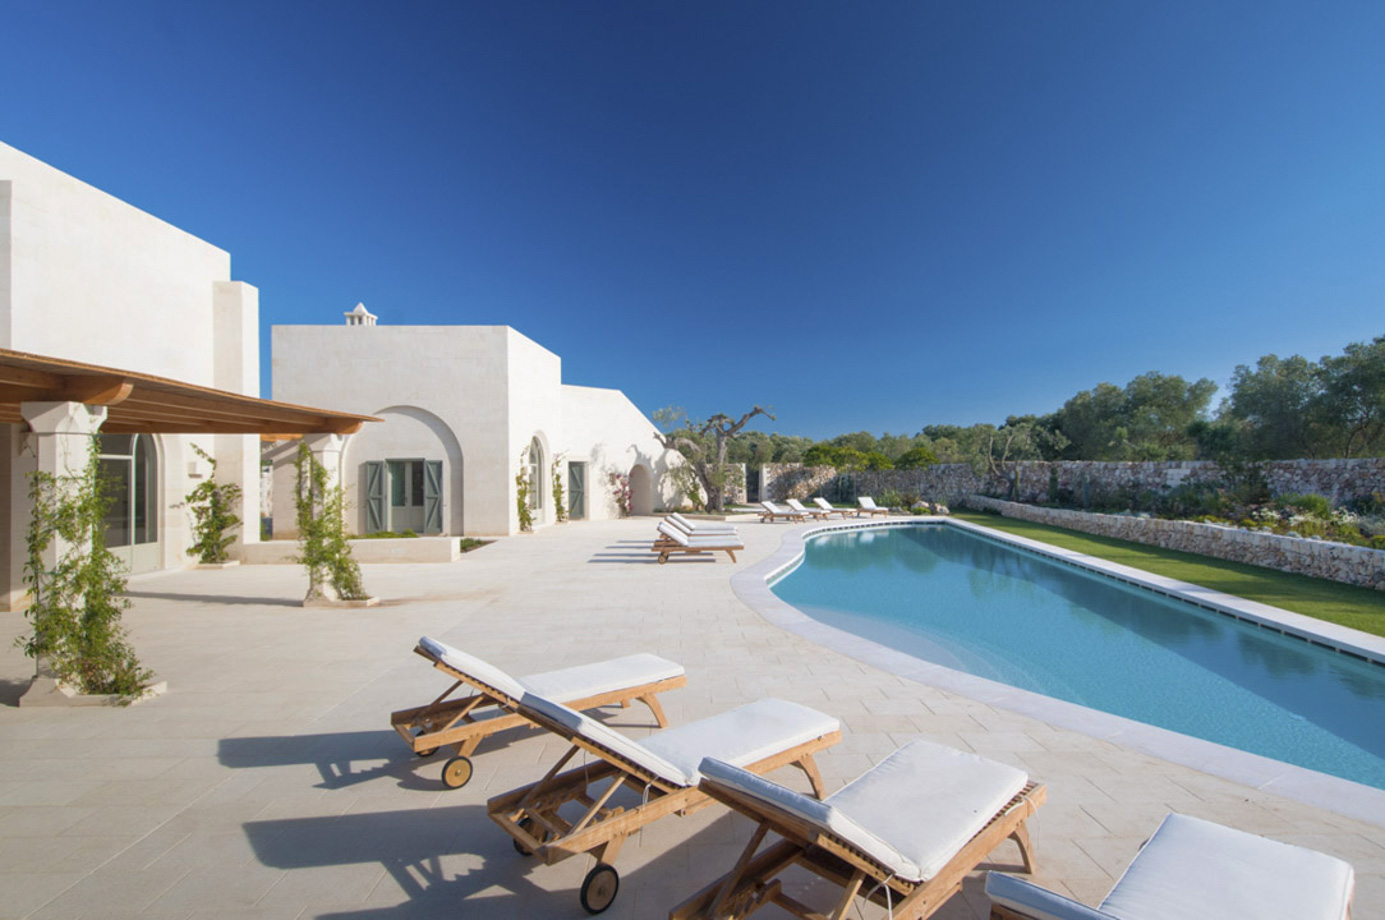 Masseria Campo dei Fiori – Luxury Rental Villa with pool in Puglia – Sleeps 12